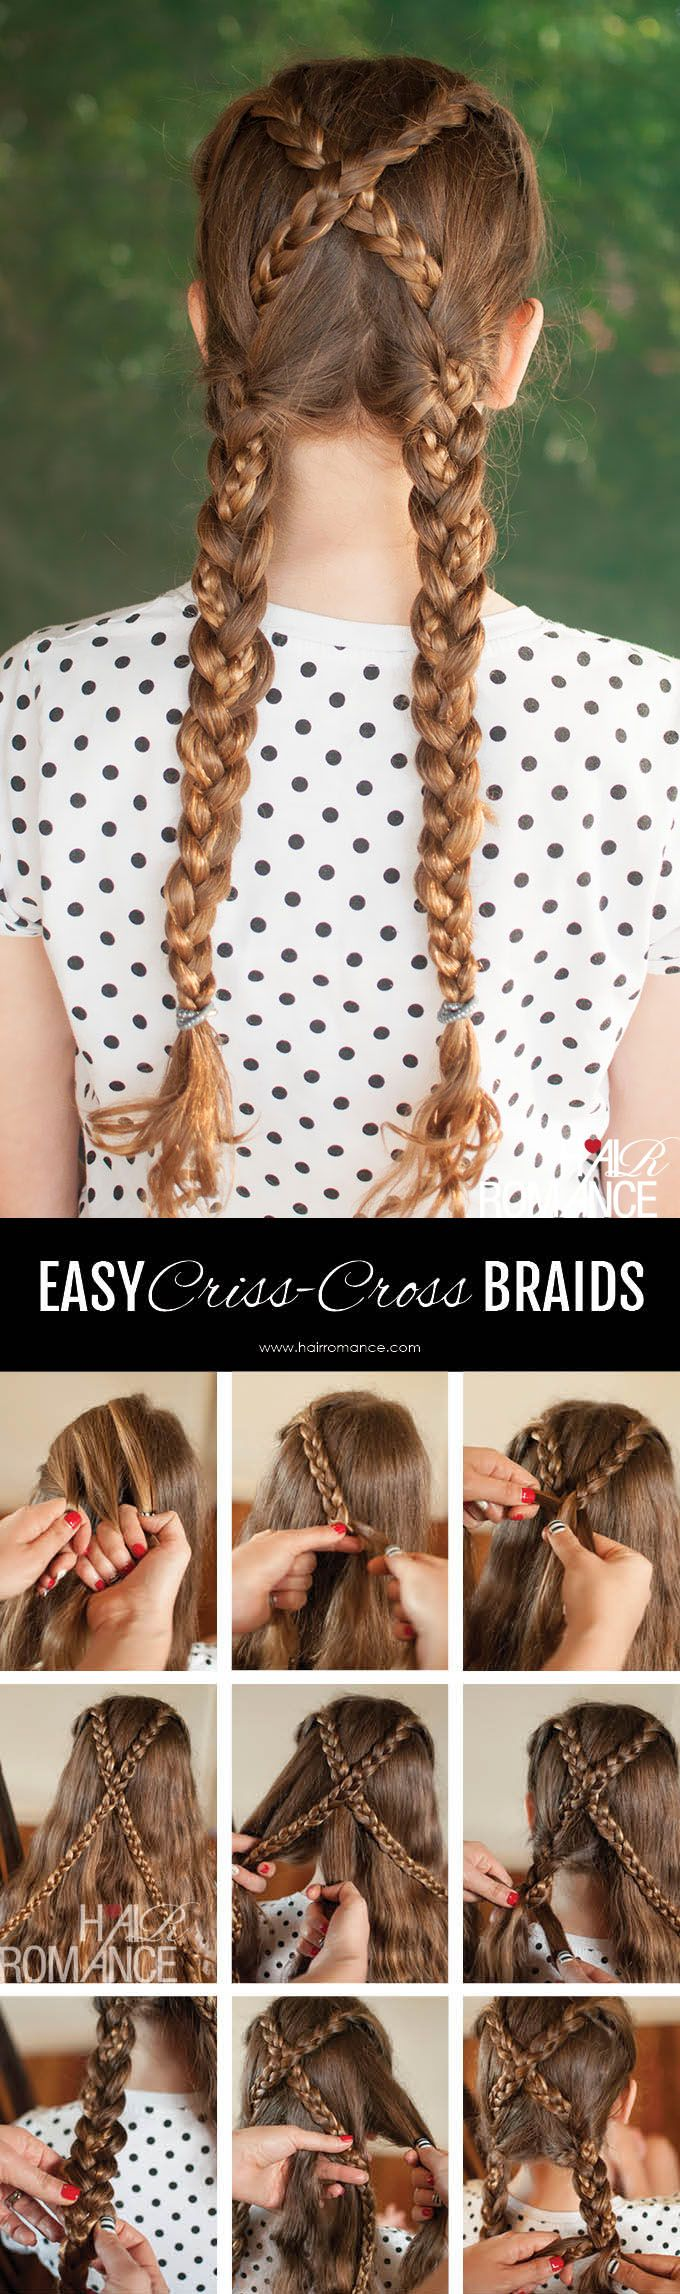 best wlosy images on pinterest hairstyle ideas hair ideas and